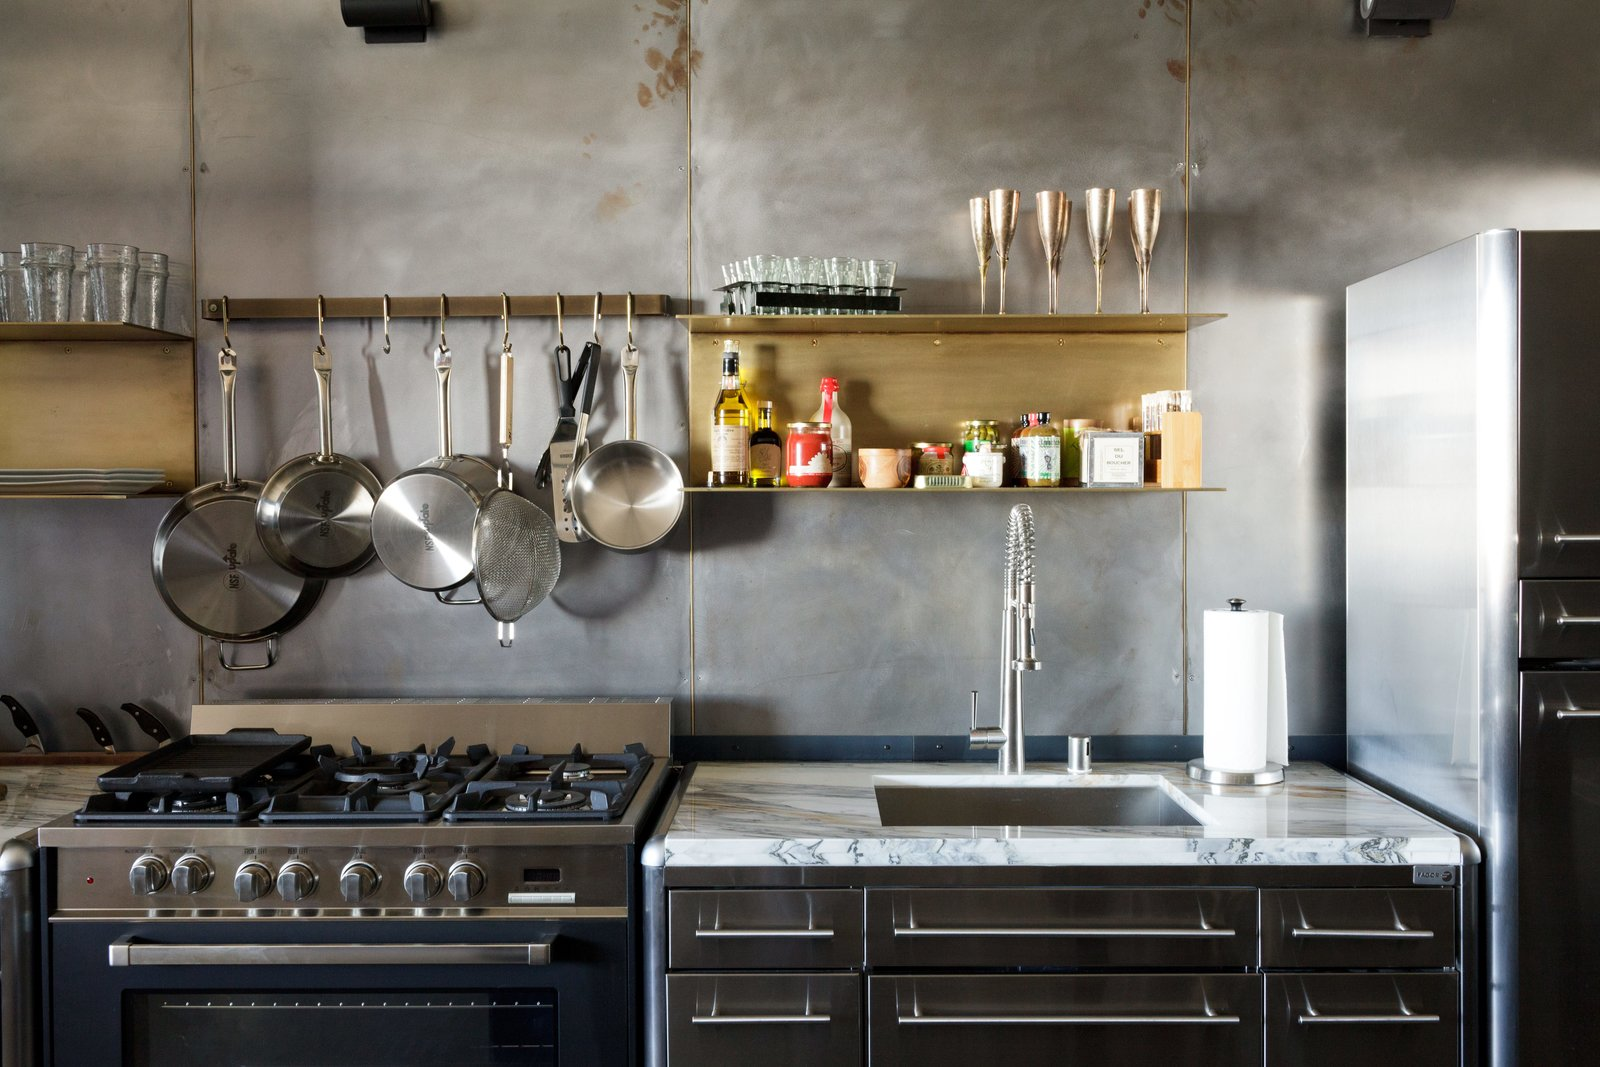 Photo 1 of 6 in Steel and Brass Cover Nearly Every Surface of this Industrial L.A. Kitchen